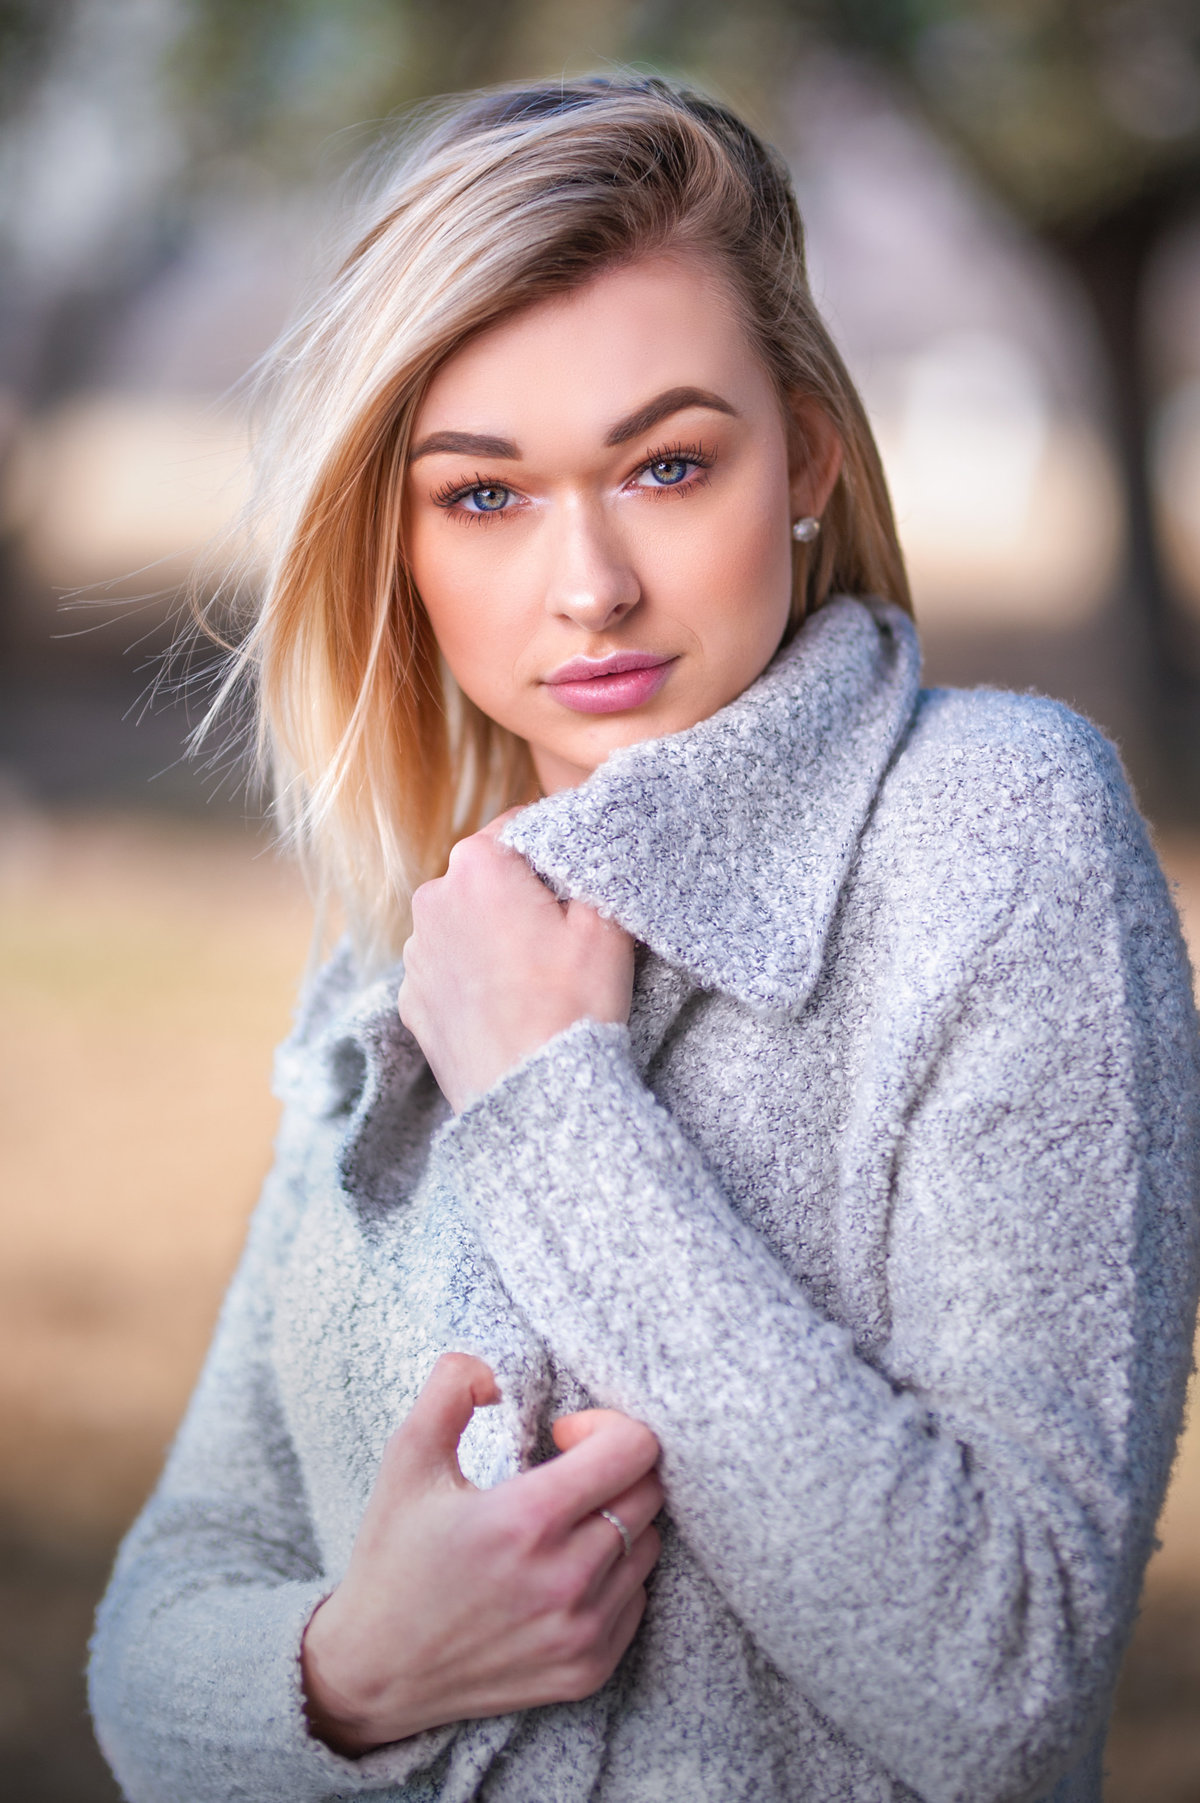 02-05-18-savannah-janae-D700-0017